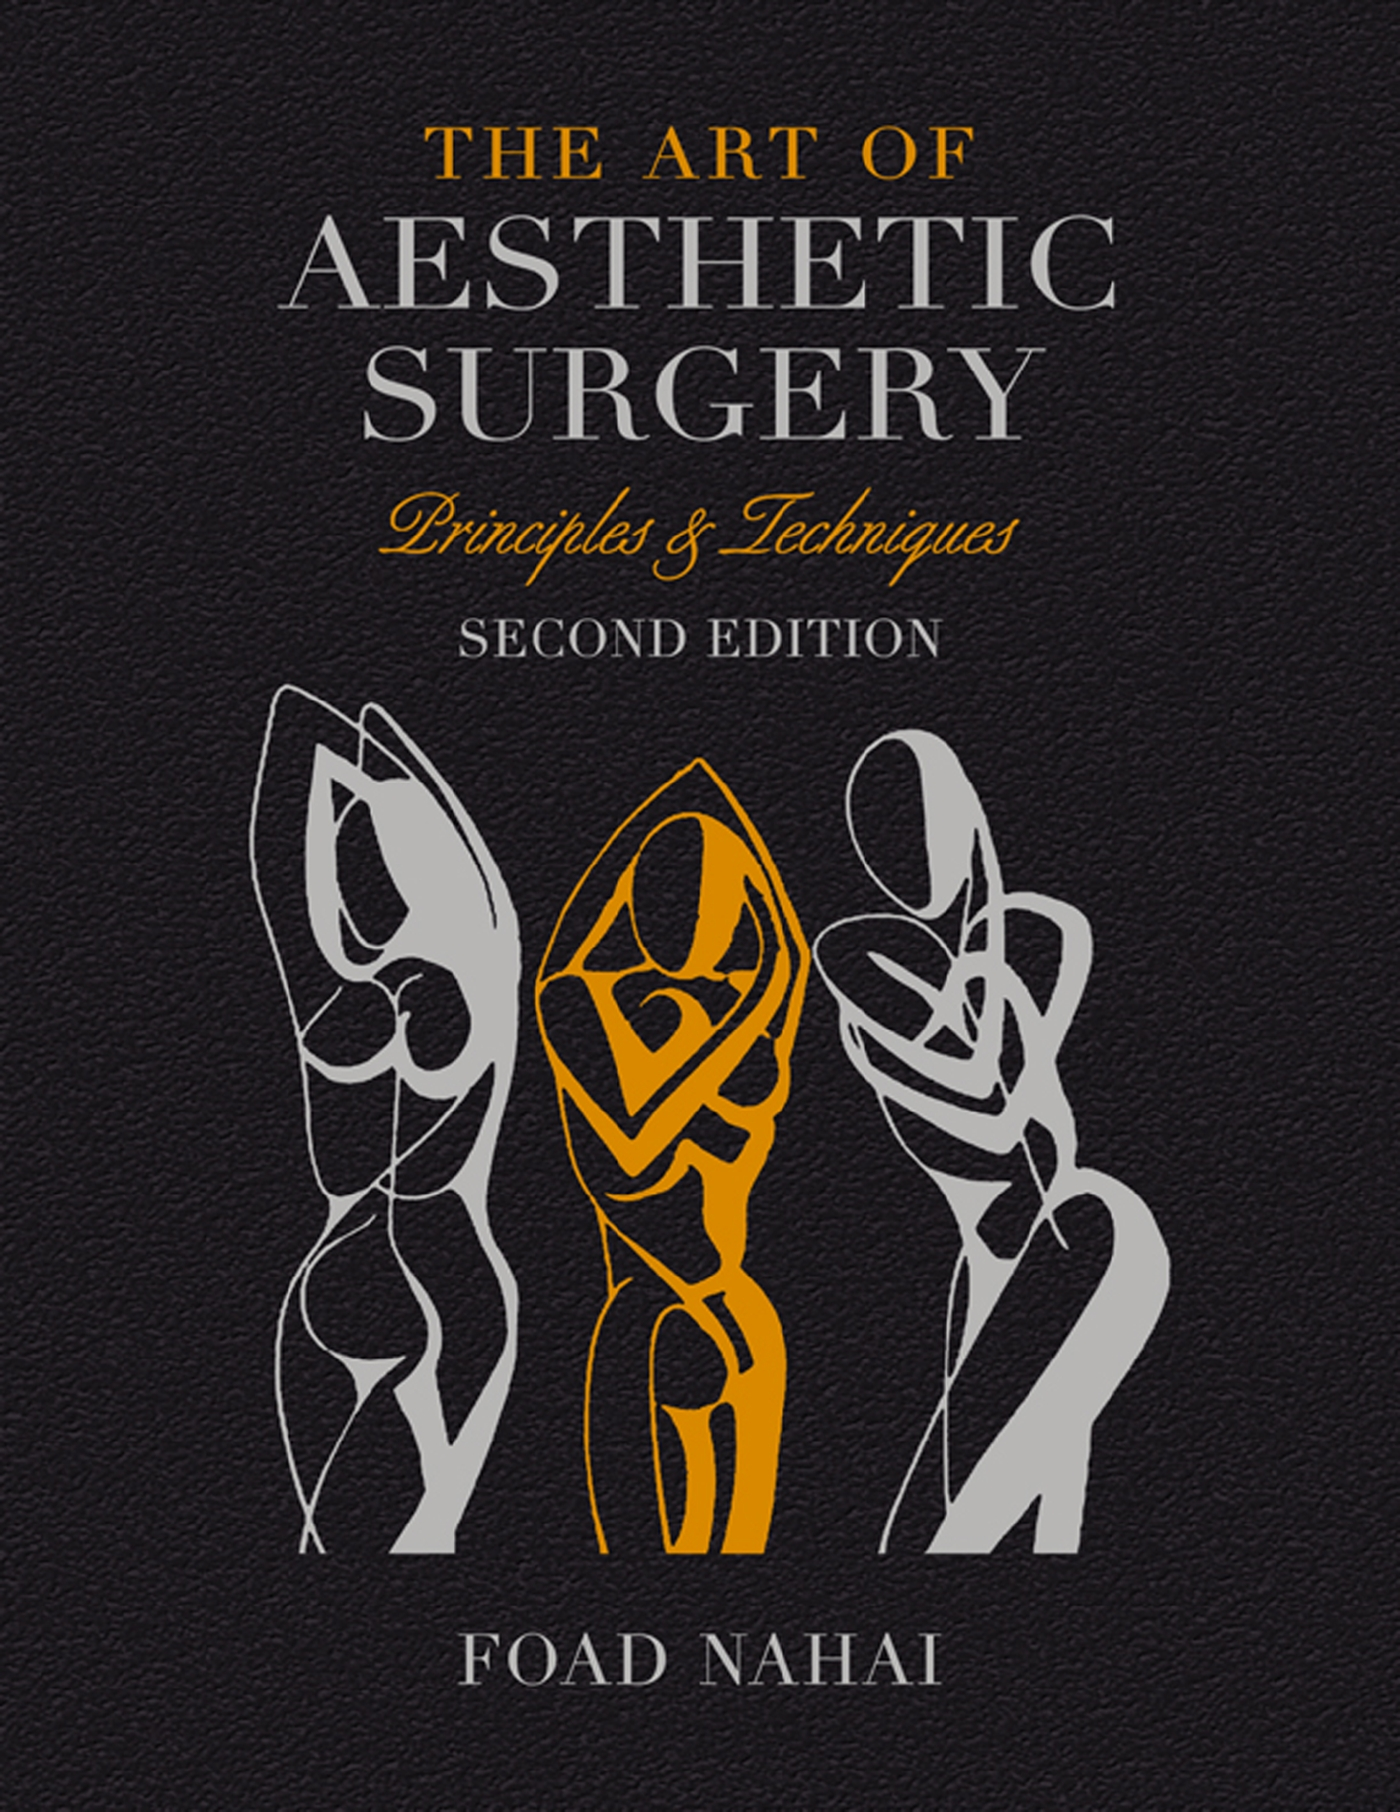 The Art of Aesthetic Surgery: Breast and Body Surgery - Volume 3, Second Edition